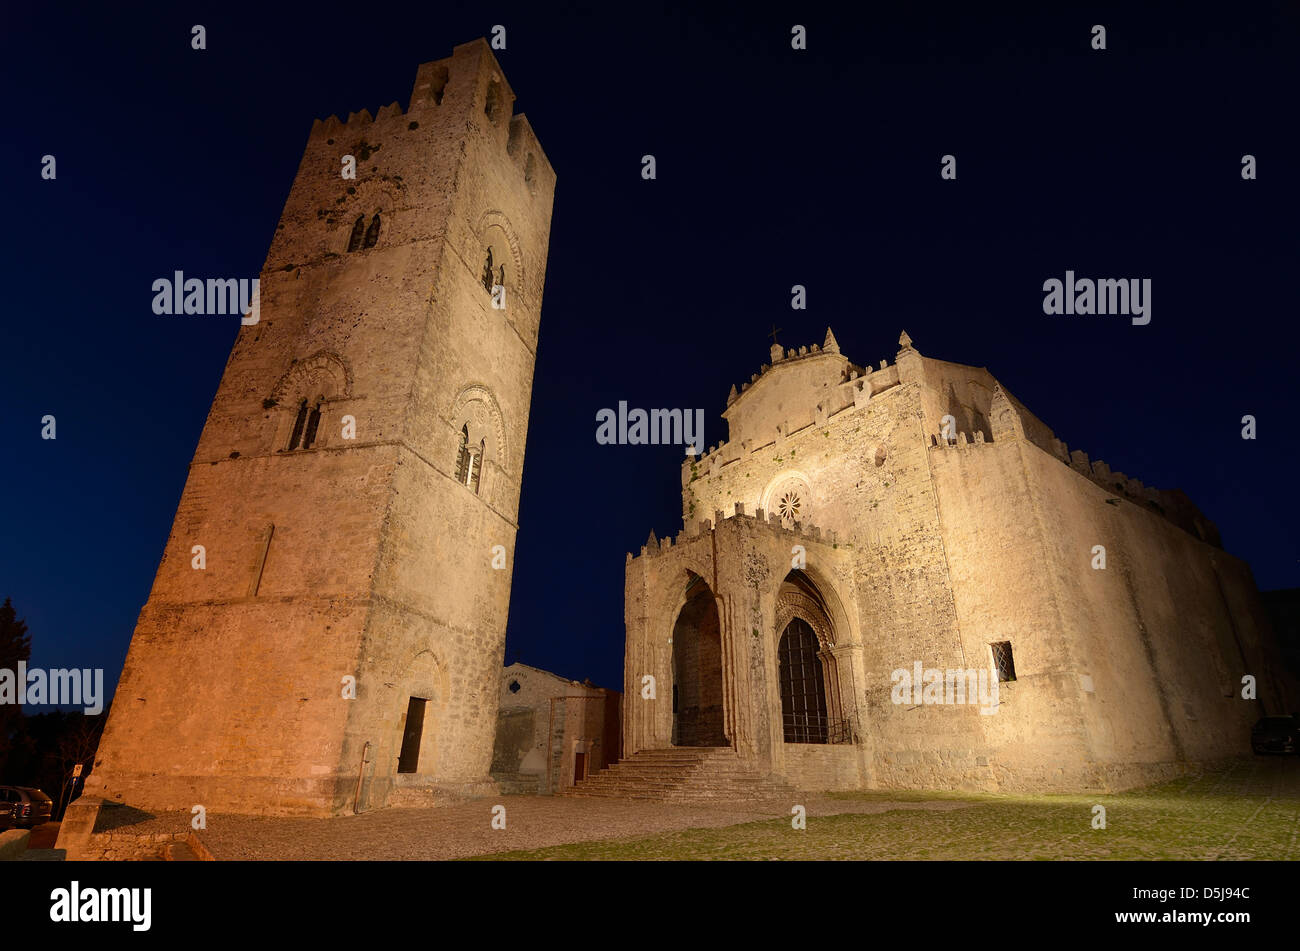 Cathedral at night, Erice, Italy. - Stock Image